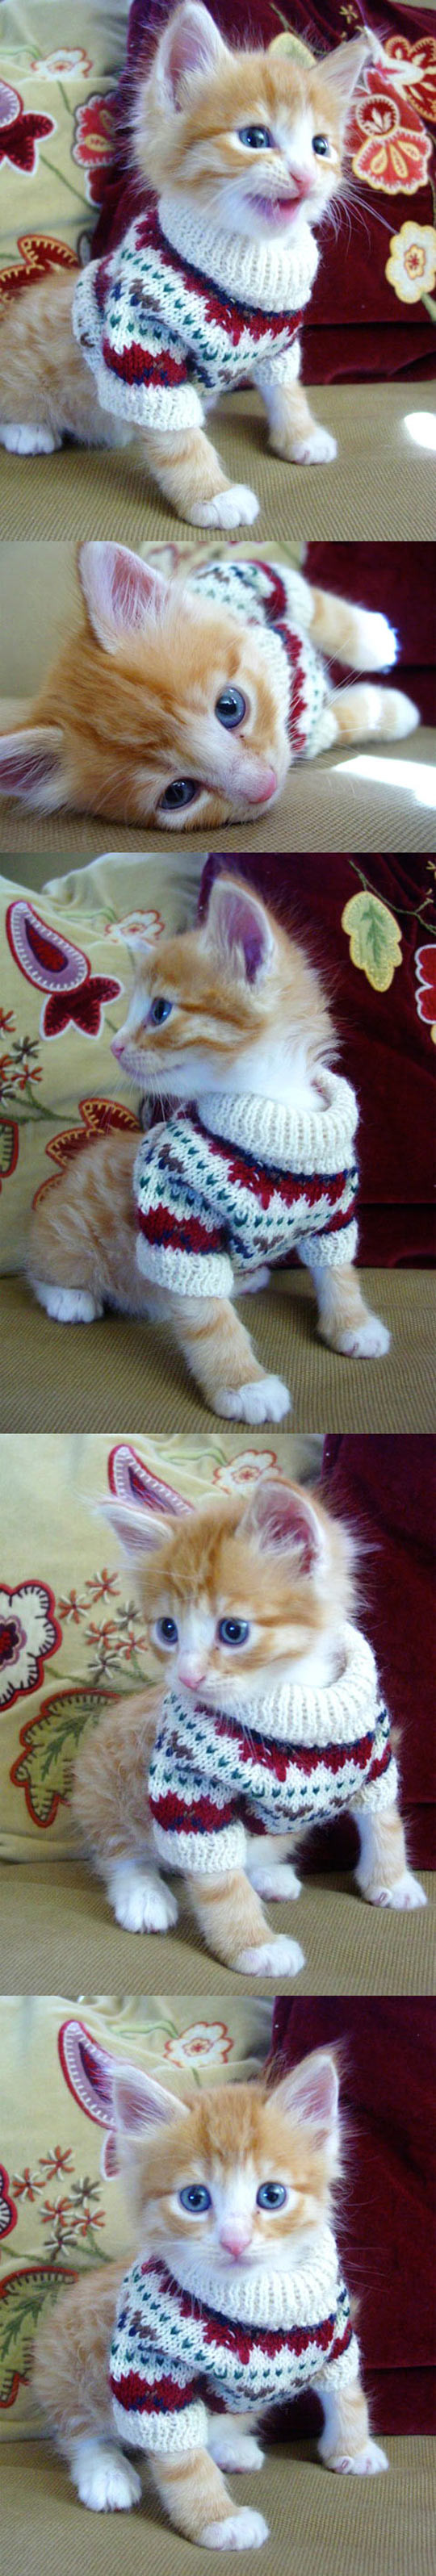 cool-kitten-sweater-clothes